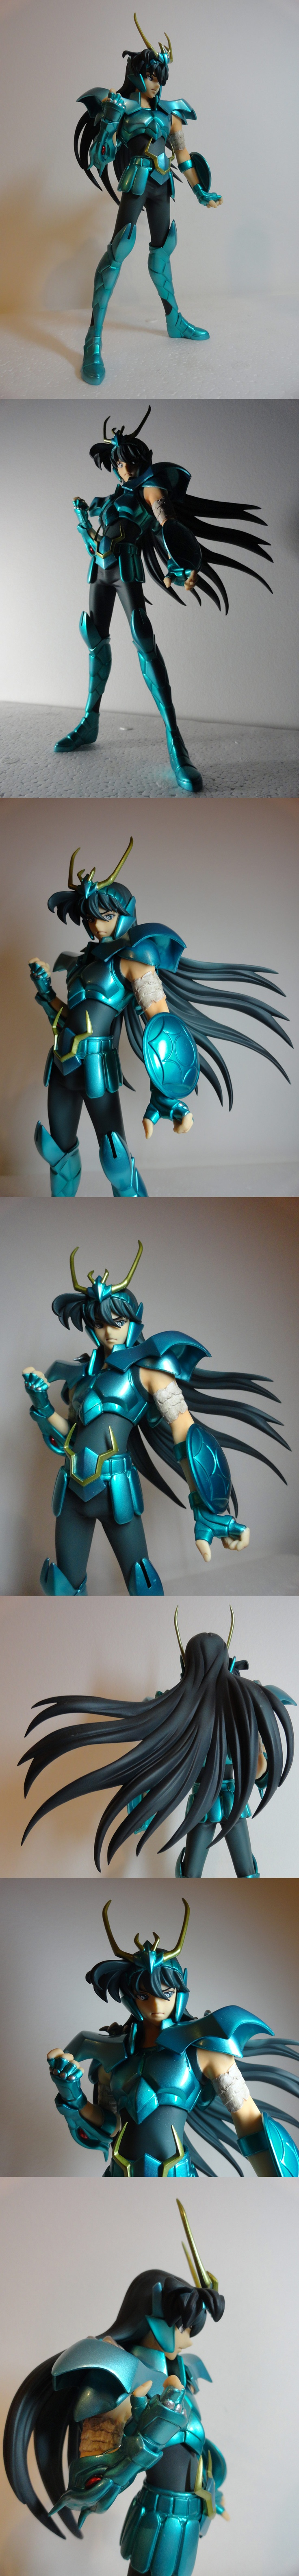 Dragon Shiryu! Excellent Model Series Saint Seiya. By MegaHouse